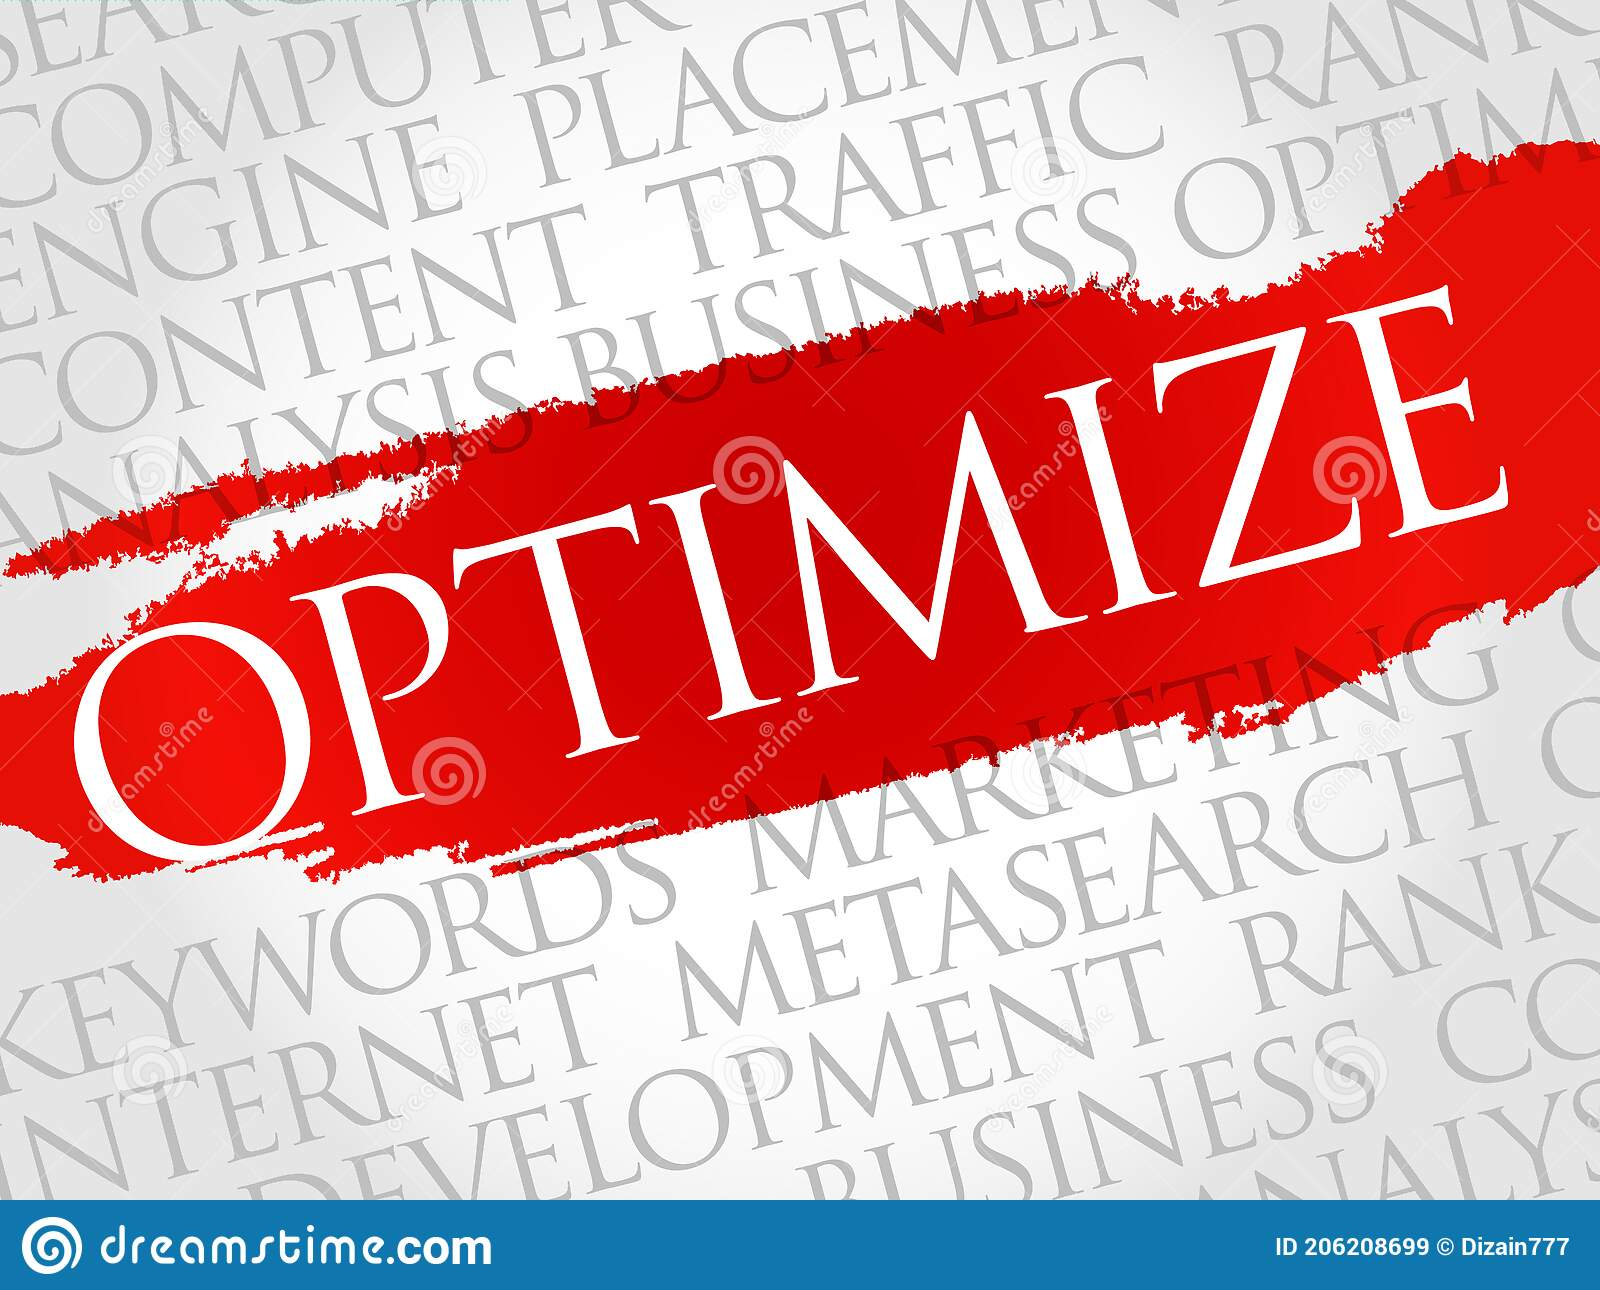 How optimize my advertising cost: 4 factors